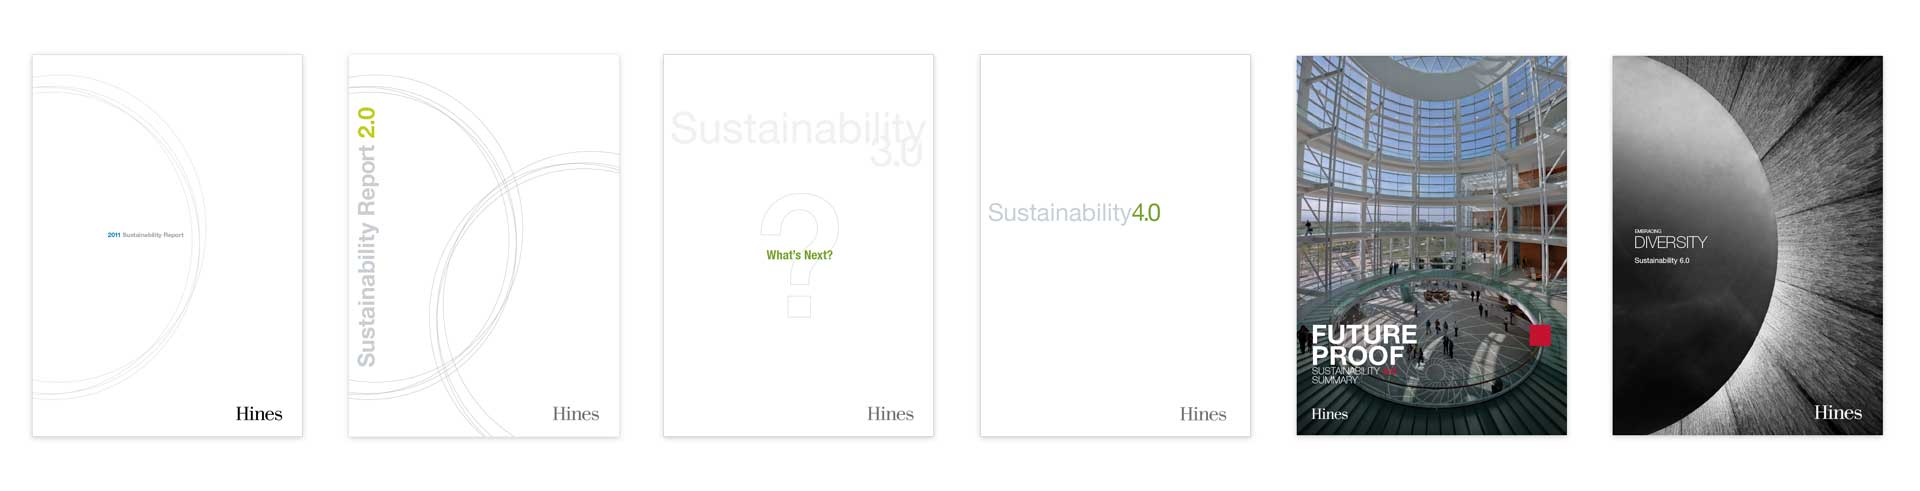 Covers for Sustainability Reports from 2011 to 2016